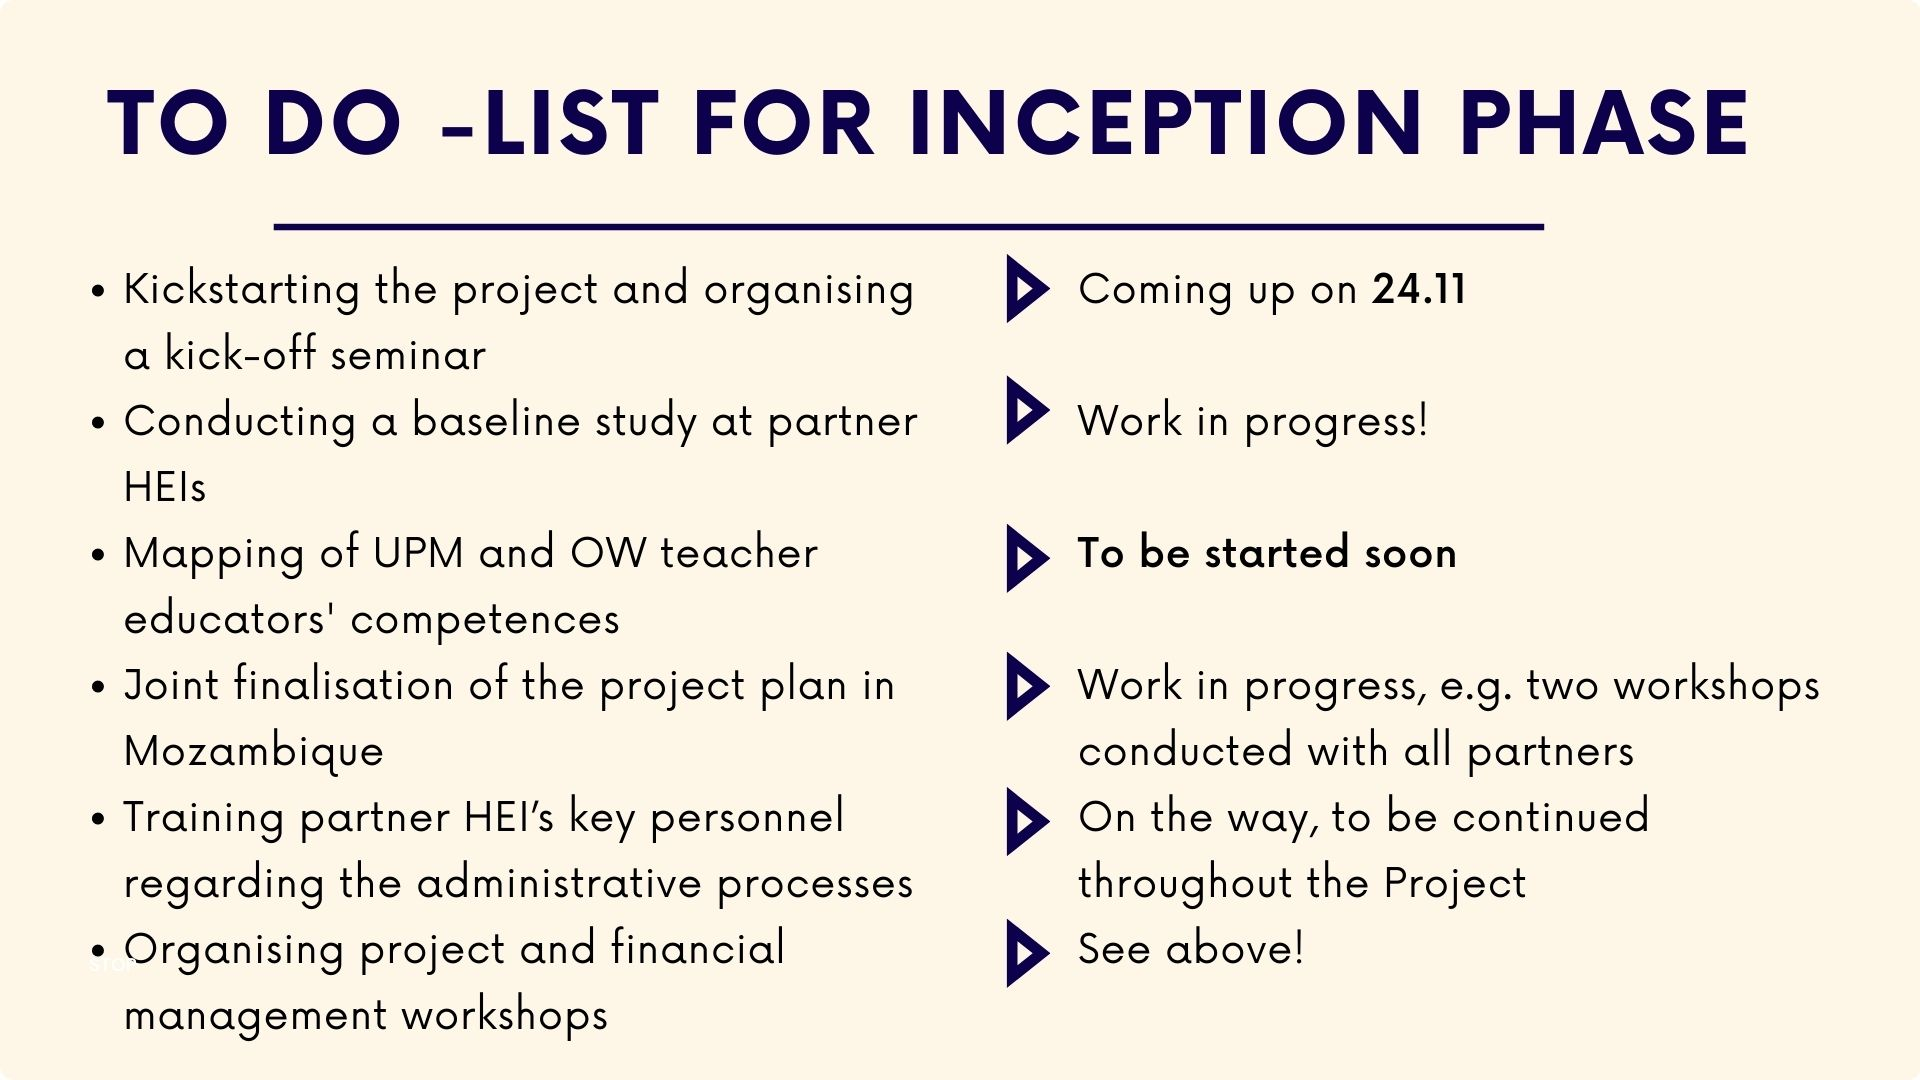 To do list for inception phase: 1) Kickstarting the project and organising a kick-off seminar on 24 November 2) Conducting a baseline study at partner HEIs. Work in progress. 3) Mapping of UPM and OW teacher educators' competences. Will be started soon. 4) Joint finalisation of the project plan in Mozambique. Work in progress. 5) Training partner HEI's key personnel regarding the administrative processes. On-going, to be continued throughout the project. 6) Organising project and financial management workshops. On-going, to be continued throughout the project.